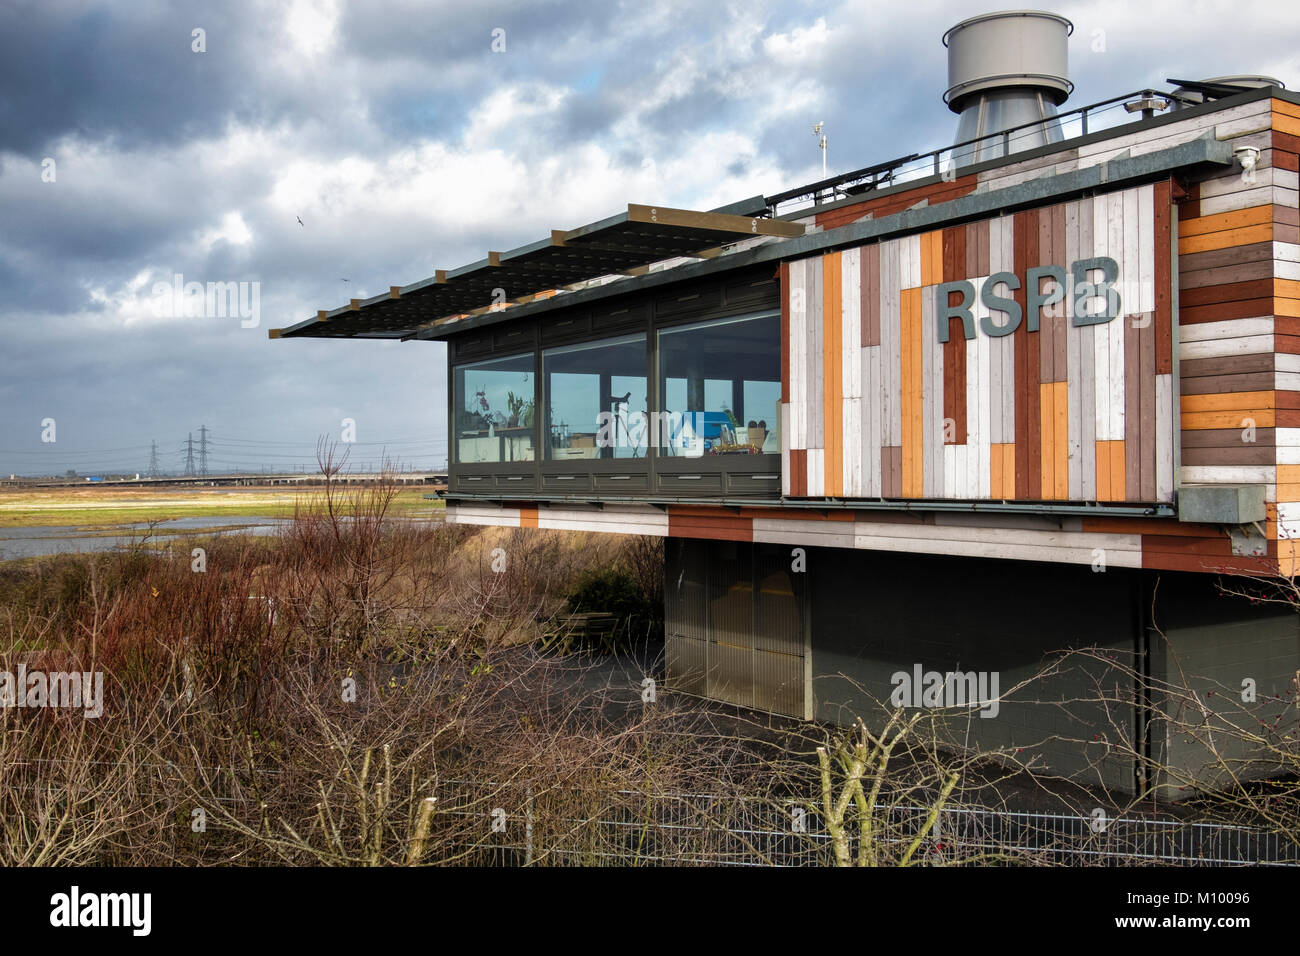 Essex UK. Visitor Centre of Rainham Marshes RSPB nature reserve next to Thames Estuary in Purfleet,Environmentally - Stock Image